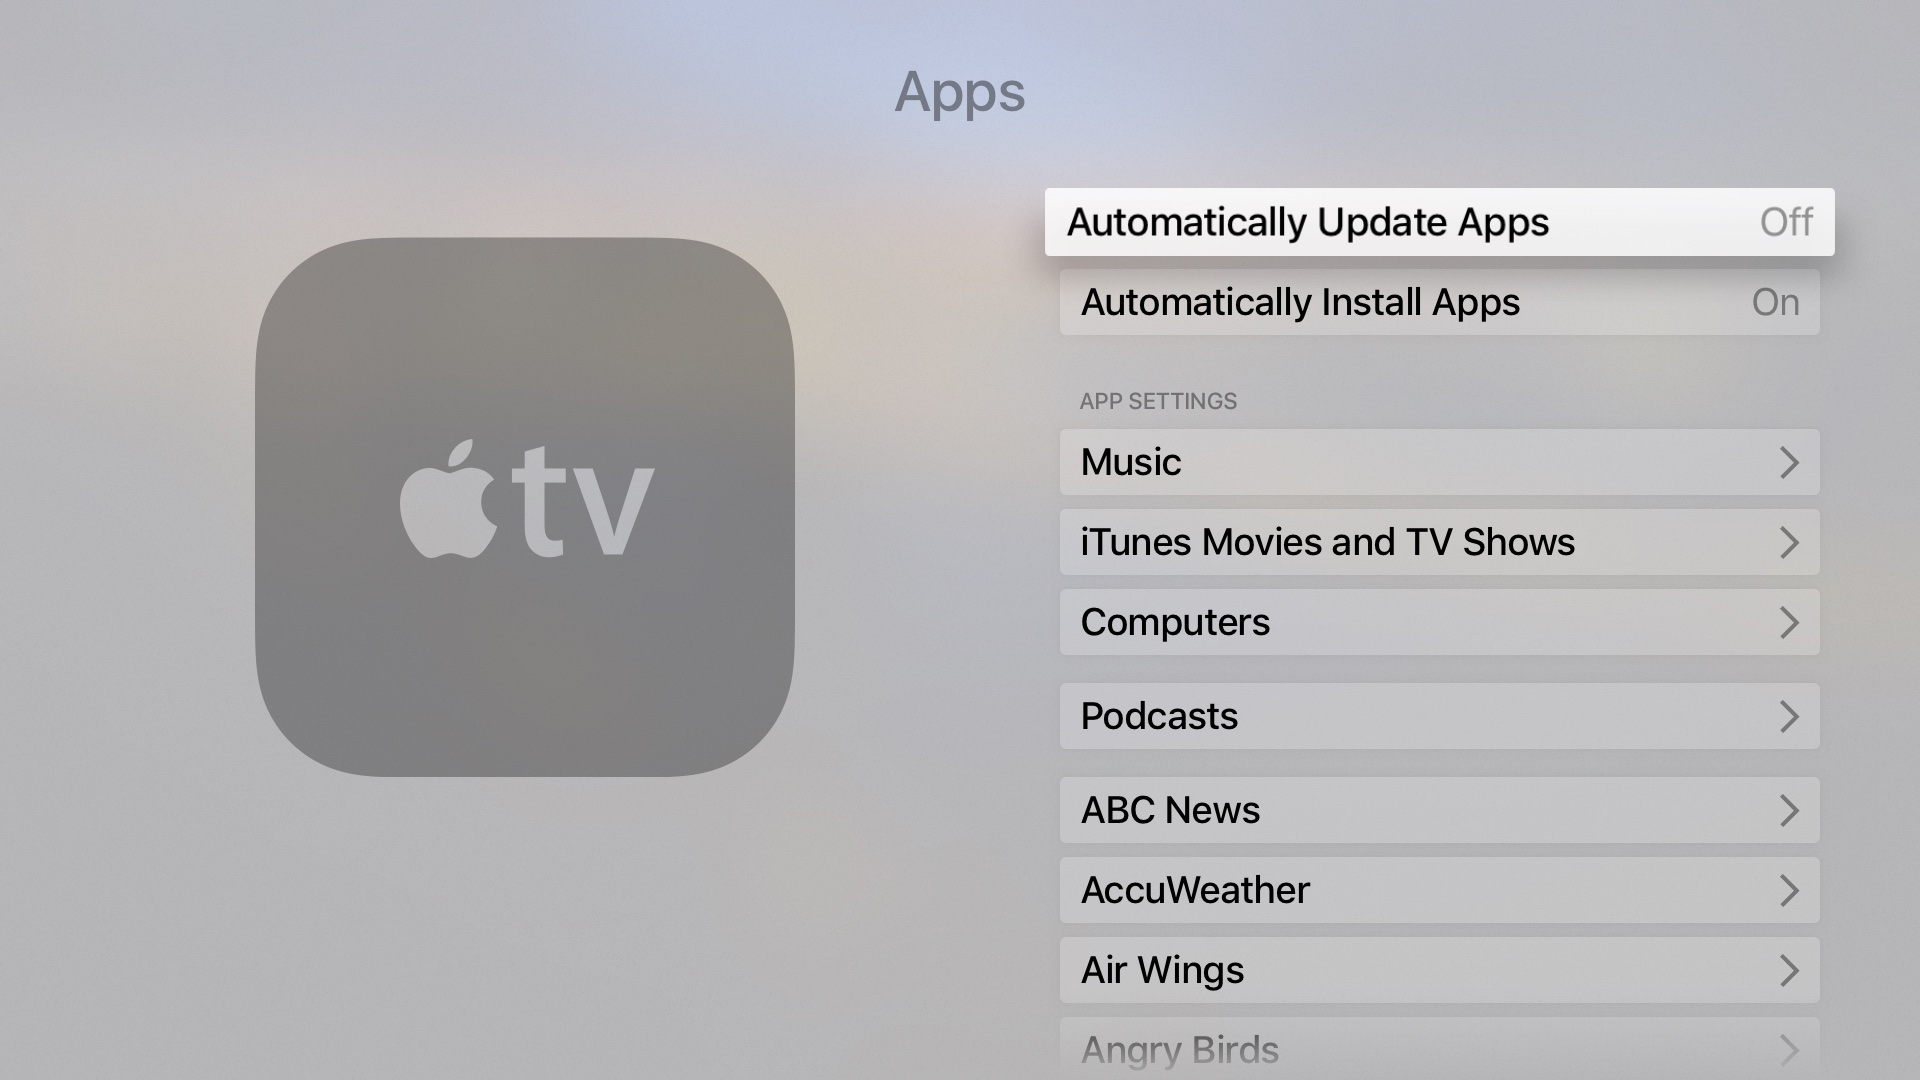 tvOS Settings Automatically Update Apps Apple TV screenshot 003